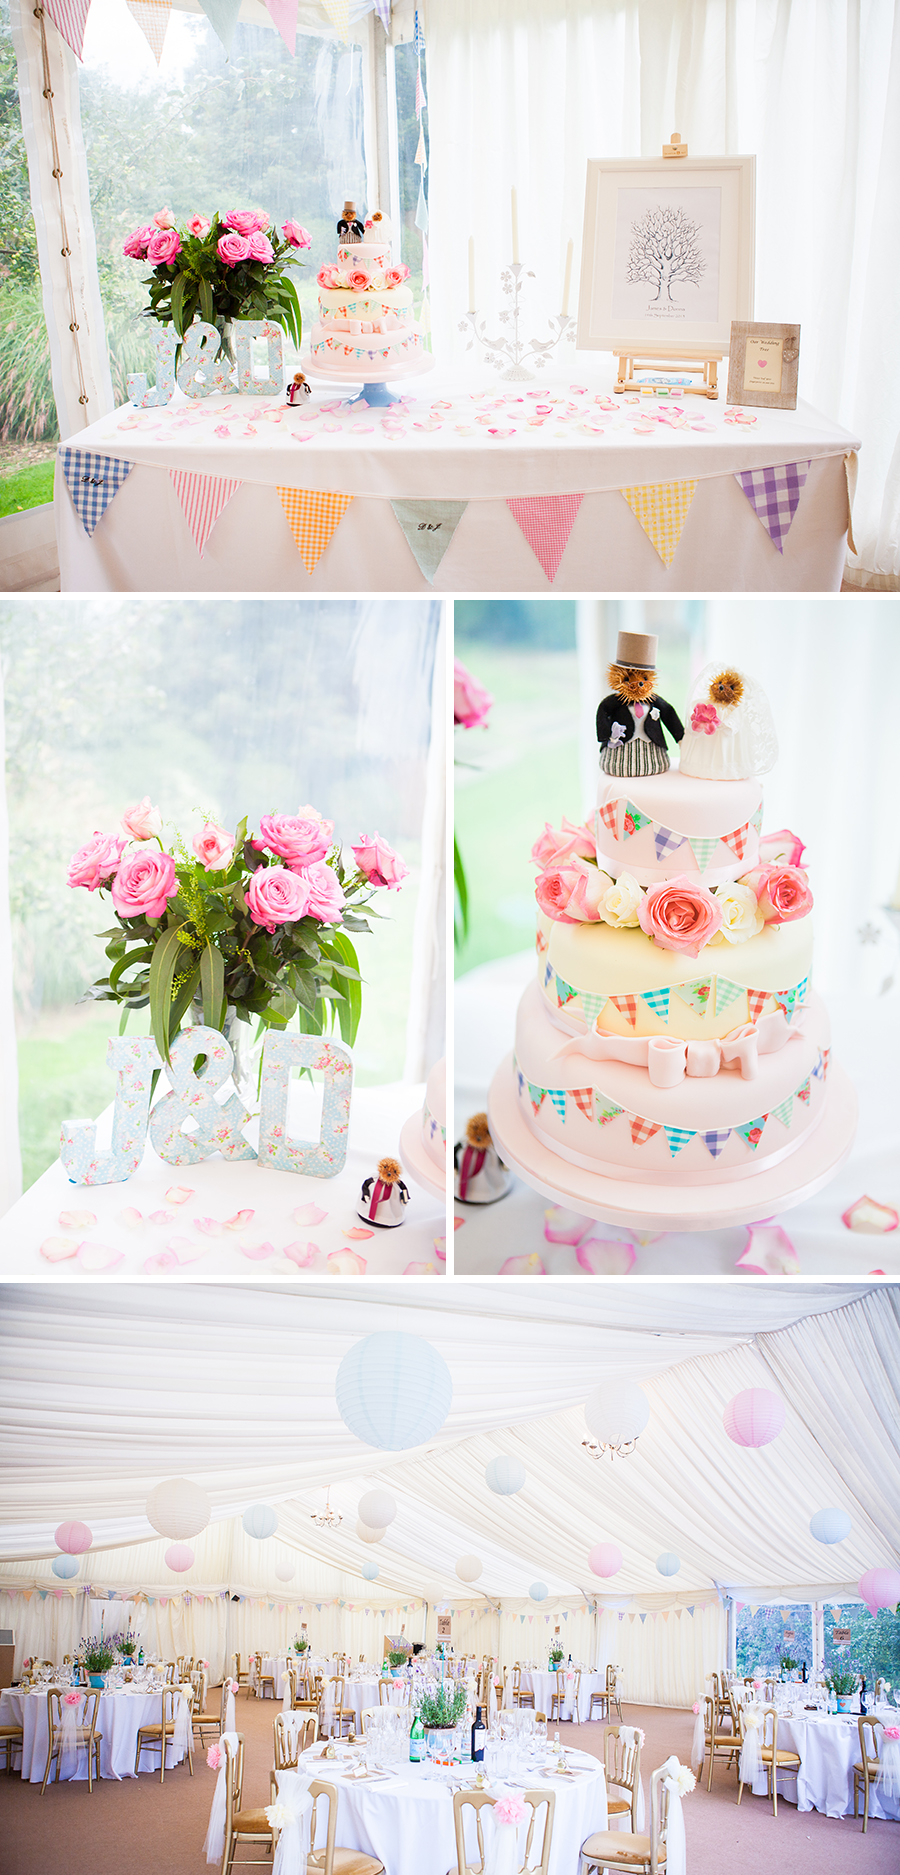 Sanctum on the Green Wedding Photographer , Sanctum on the Green Wedding, Sanctum on the Green, wedding cake, wedding bunting, wedding cake table, wedding cake table ideas